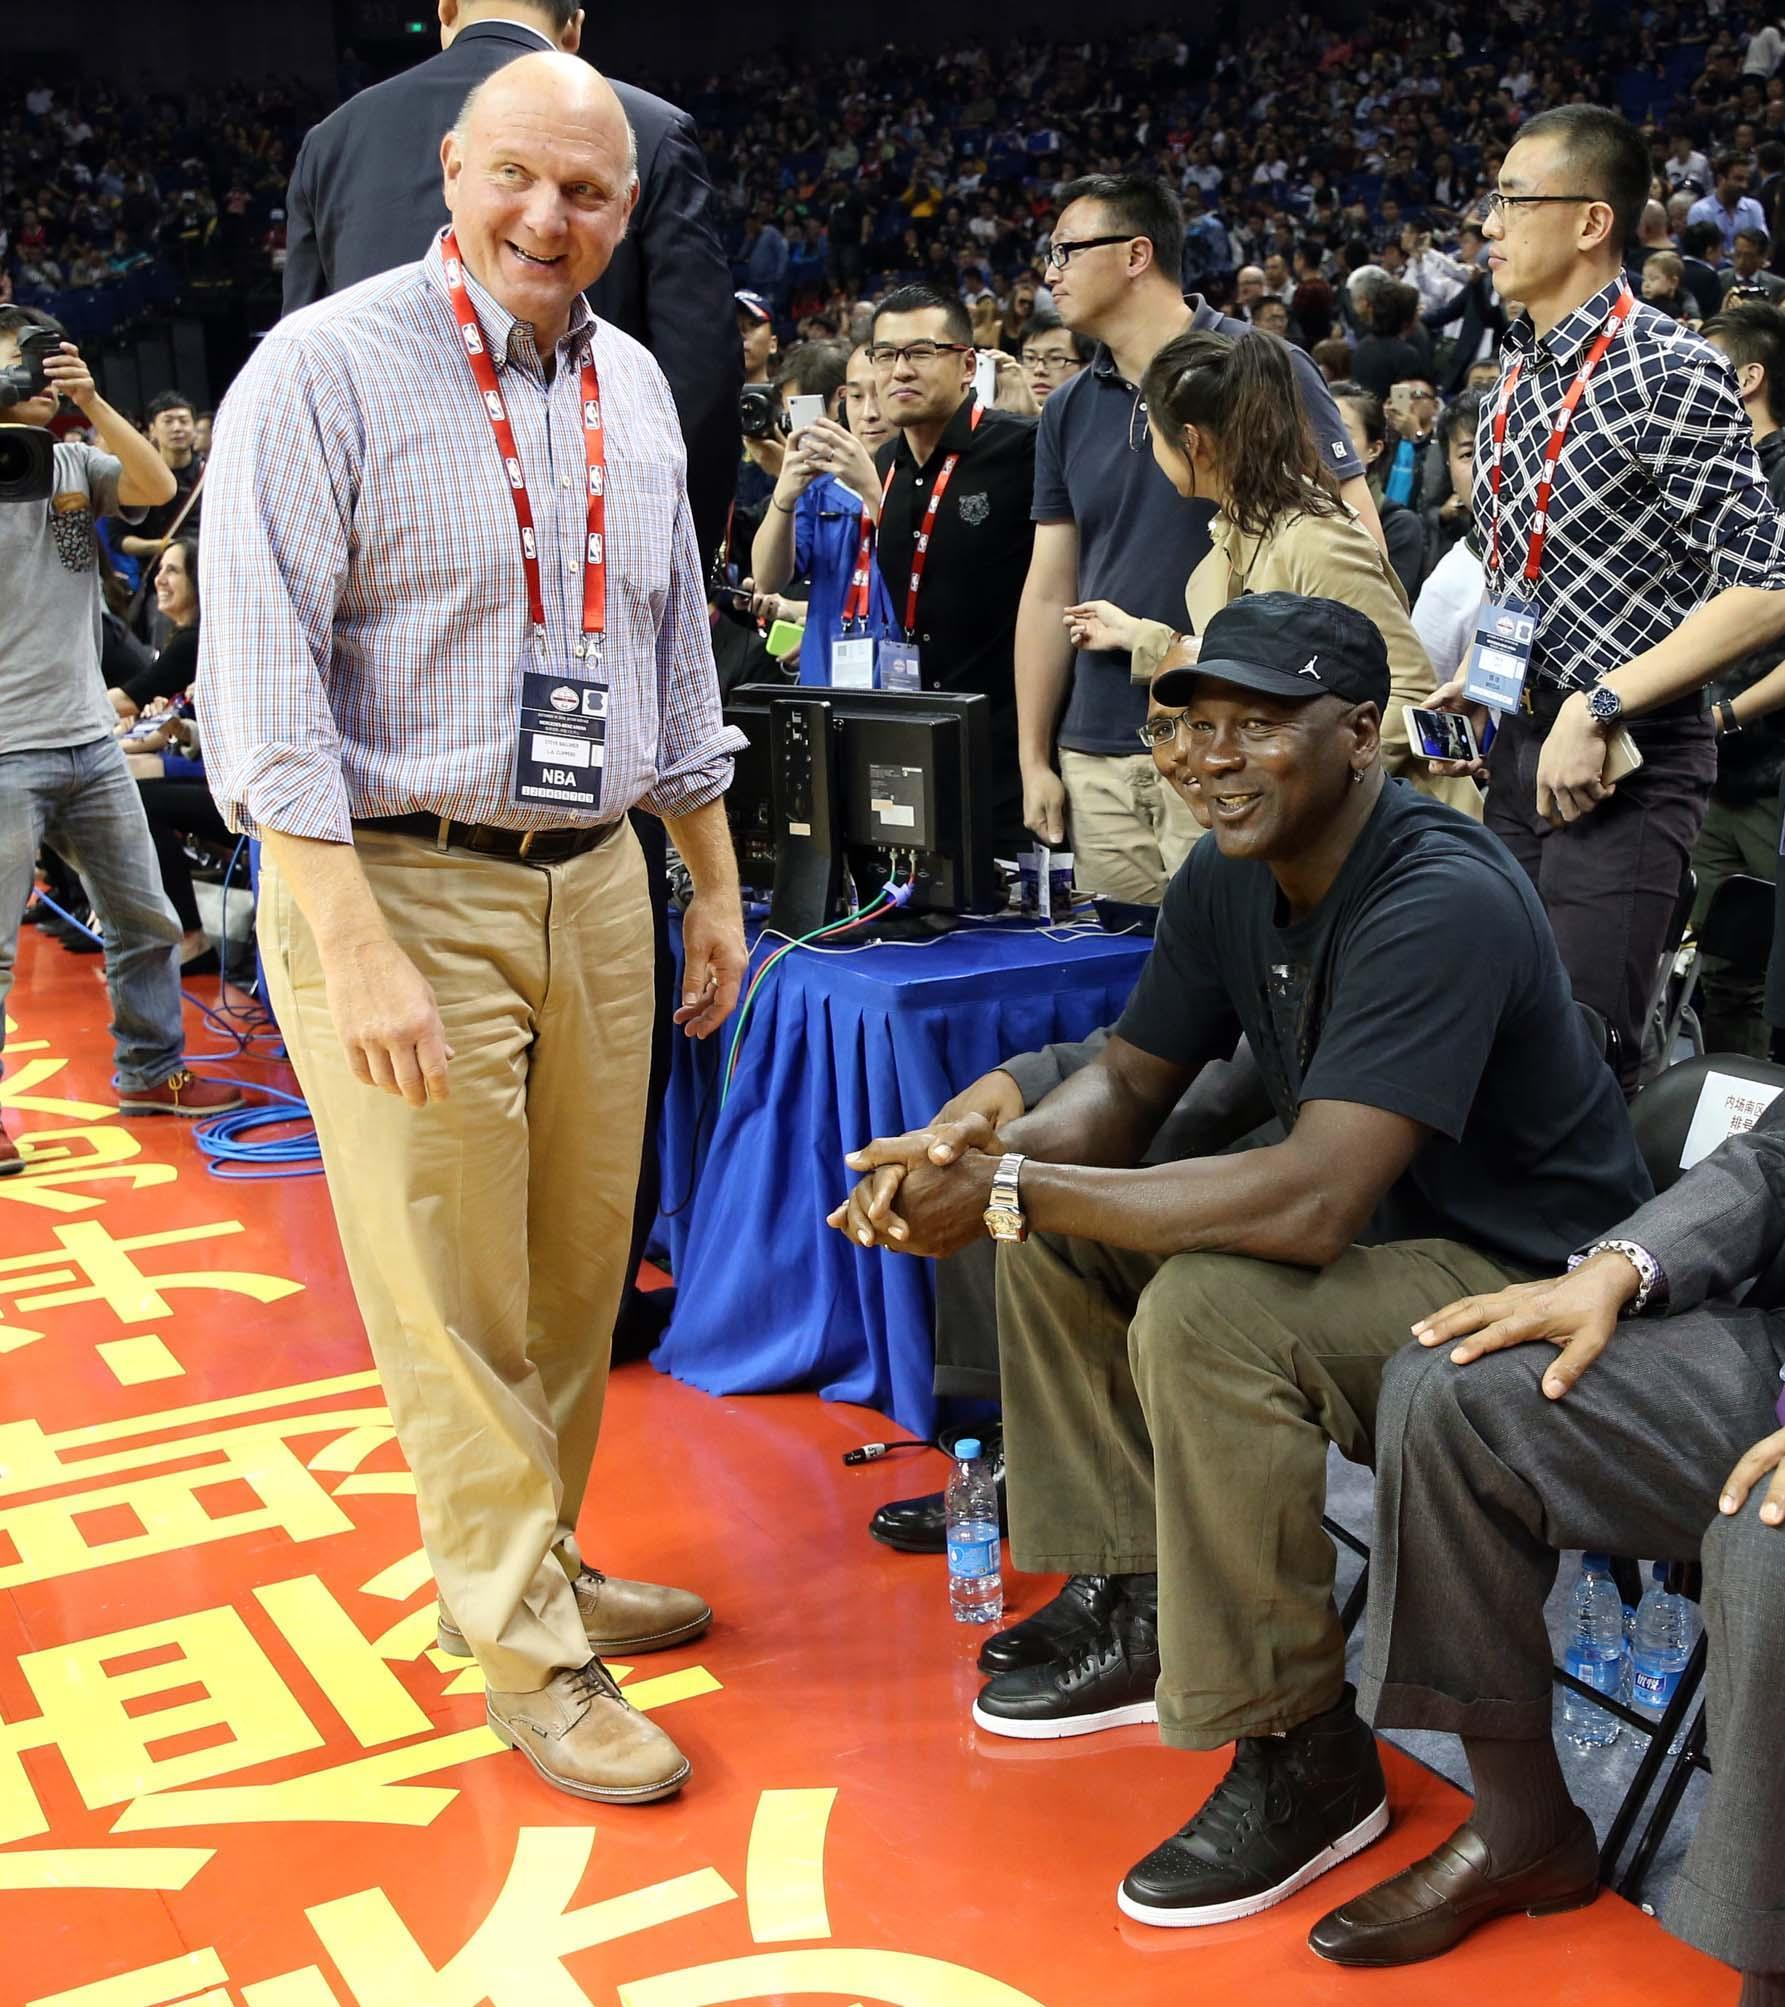 a046a8f3185f Jordan shares a moment with Clippers owner Steve Ballmer at the 2015 NBA  Global Games in China.